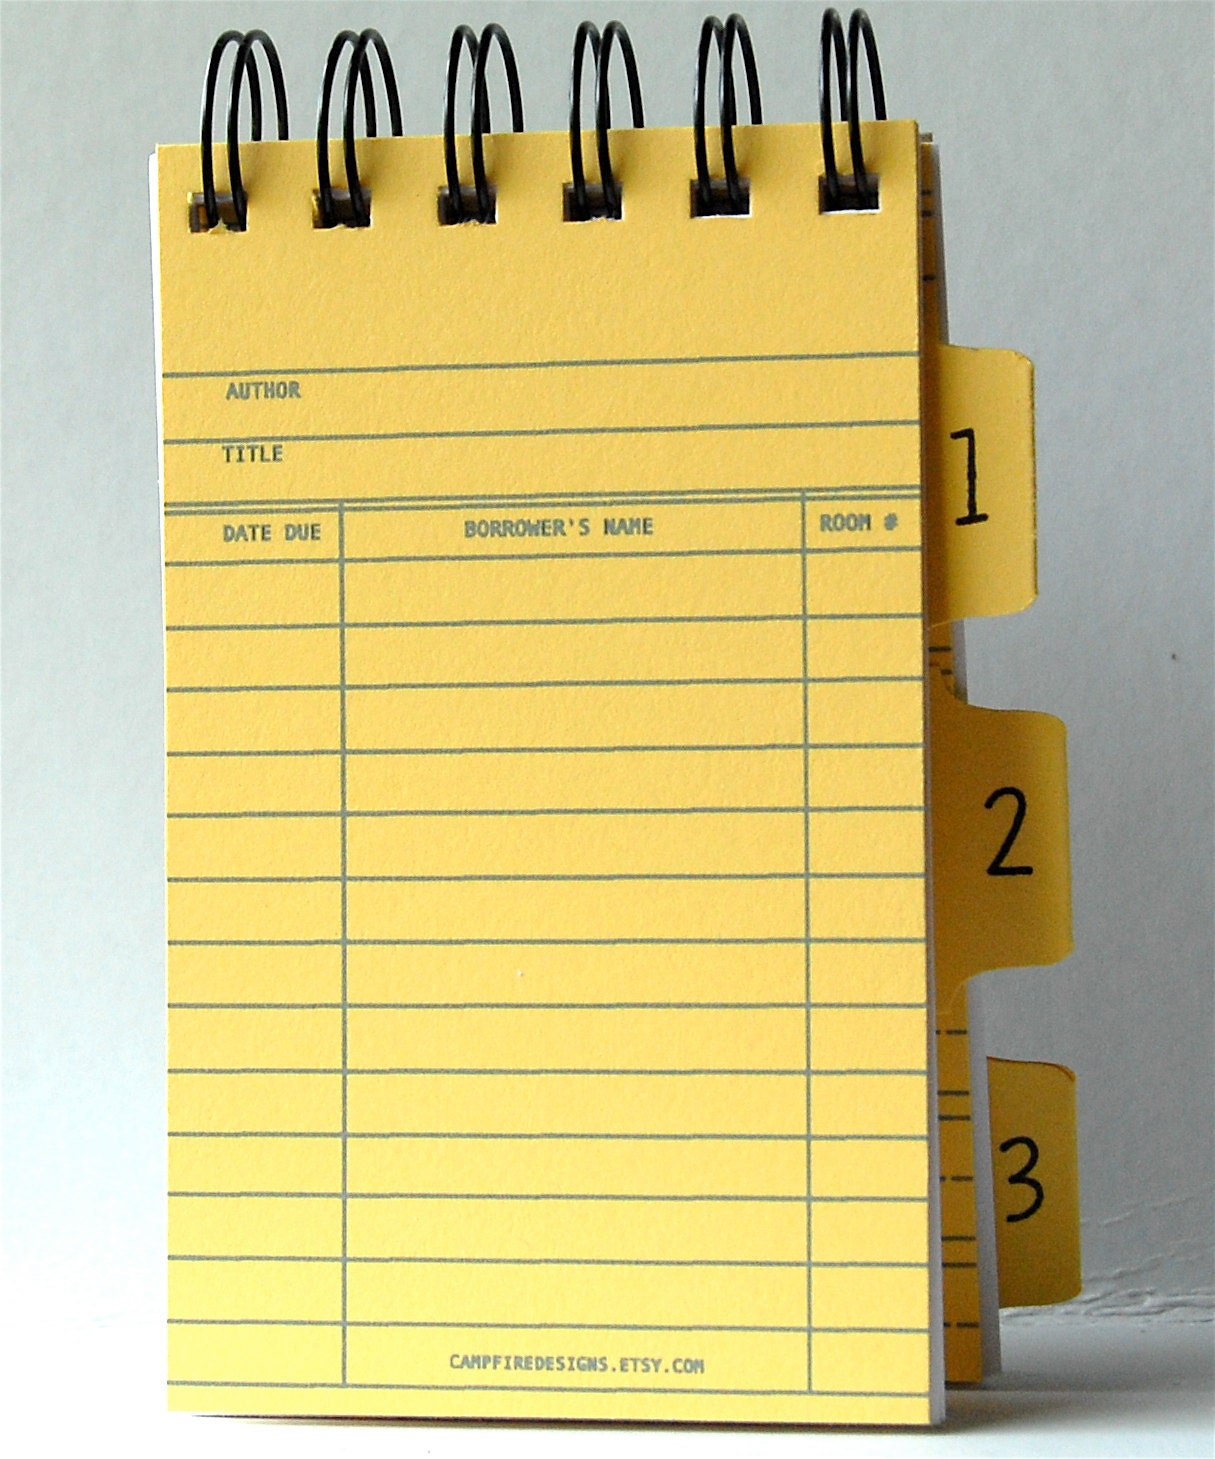 Displaying 18> Images For - Blank Accounting Ledger...